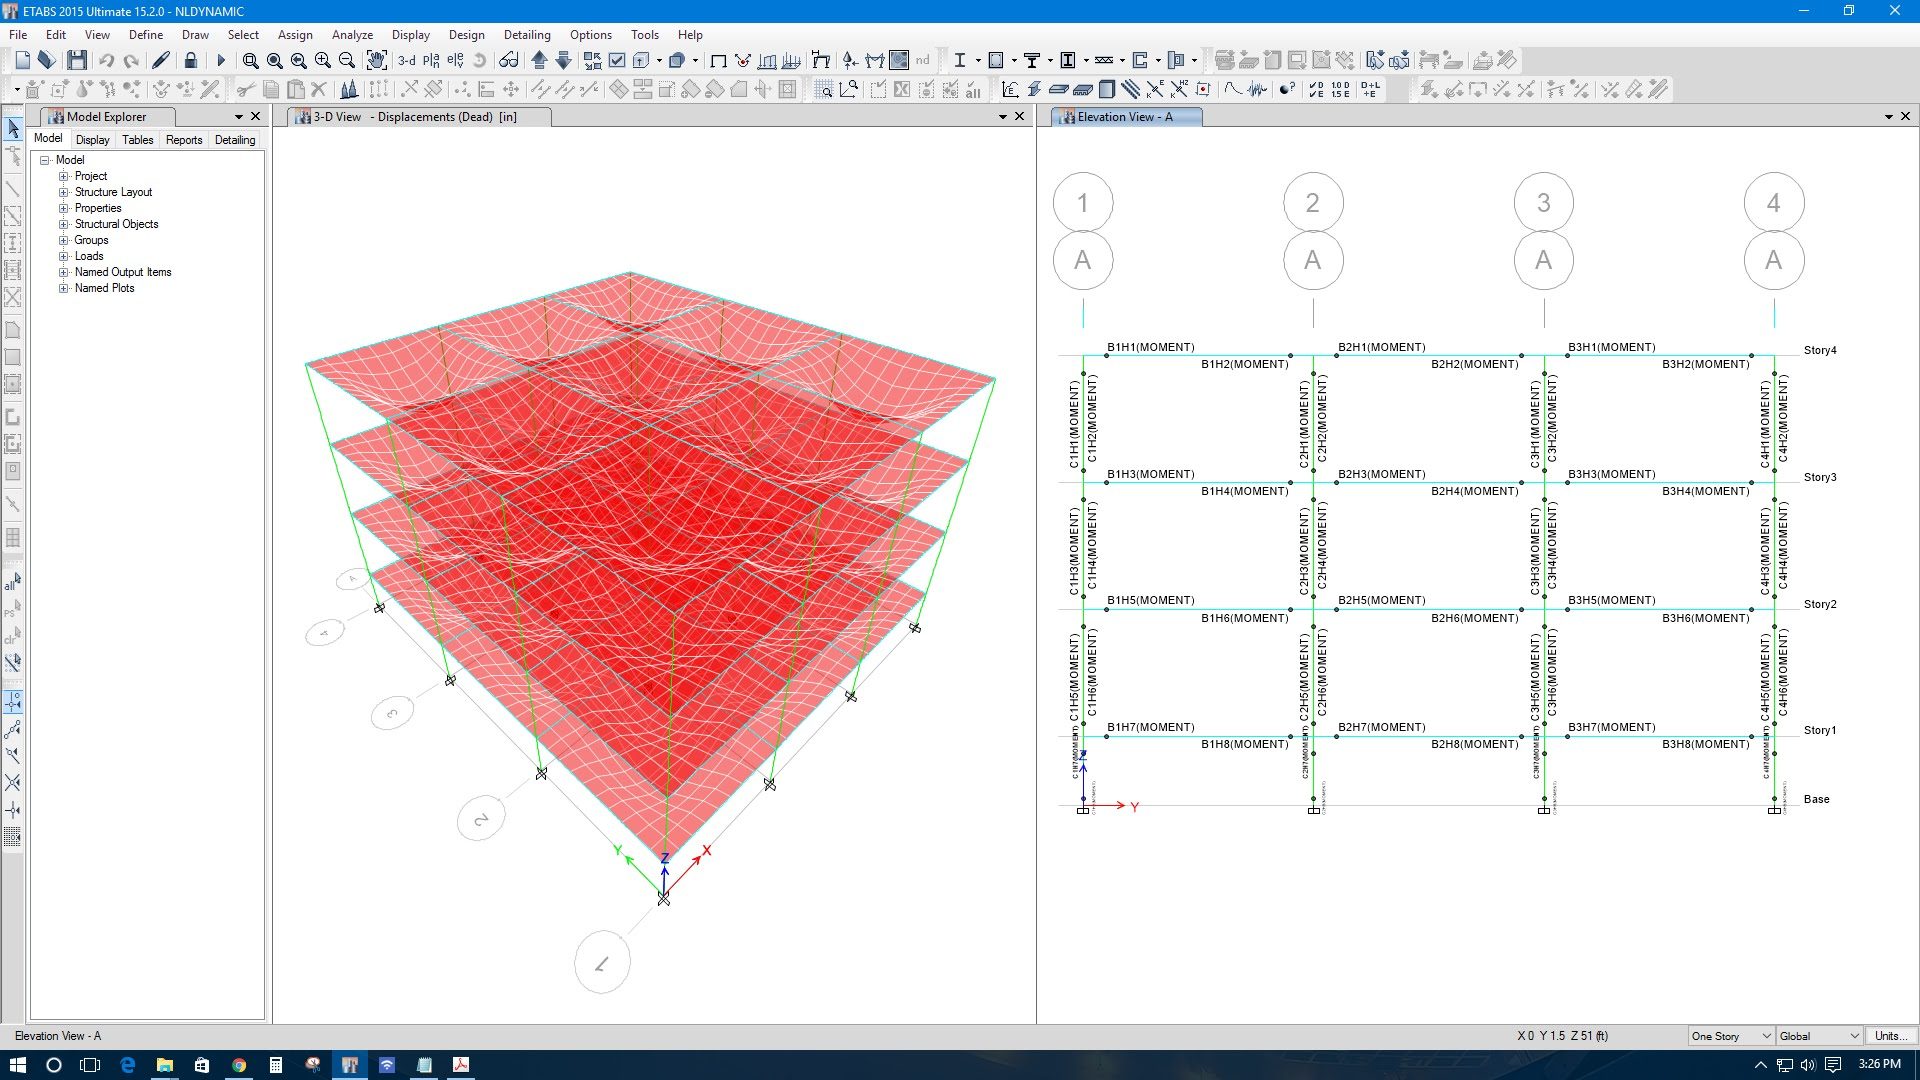 NONLINEAR DYNAMIC TIME HISTORY ANALYSIS IN ETABS 2015 V15 2 - Revit news